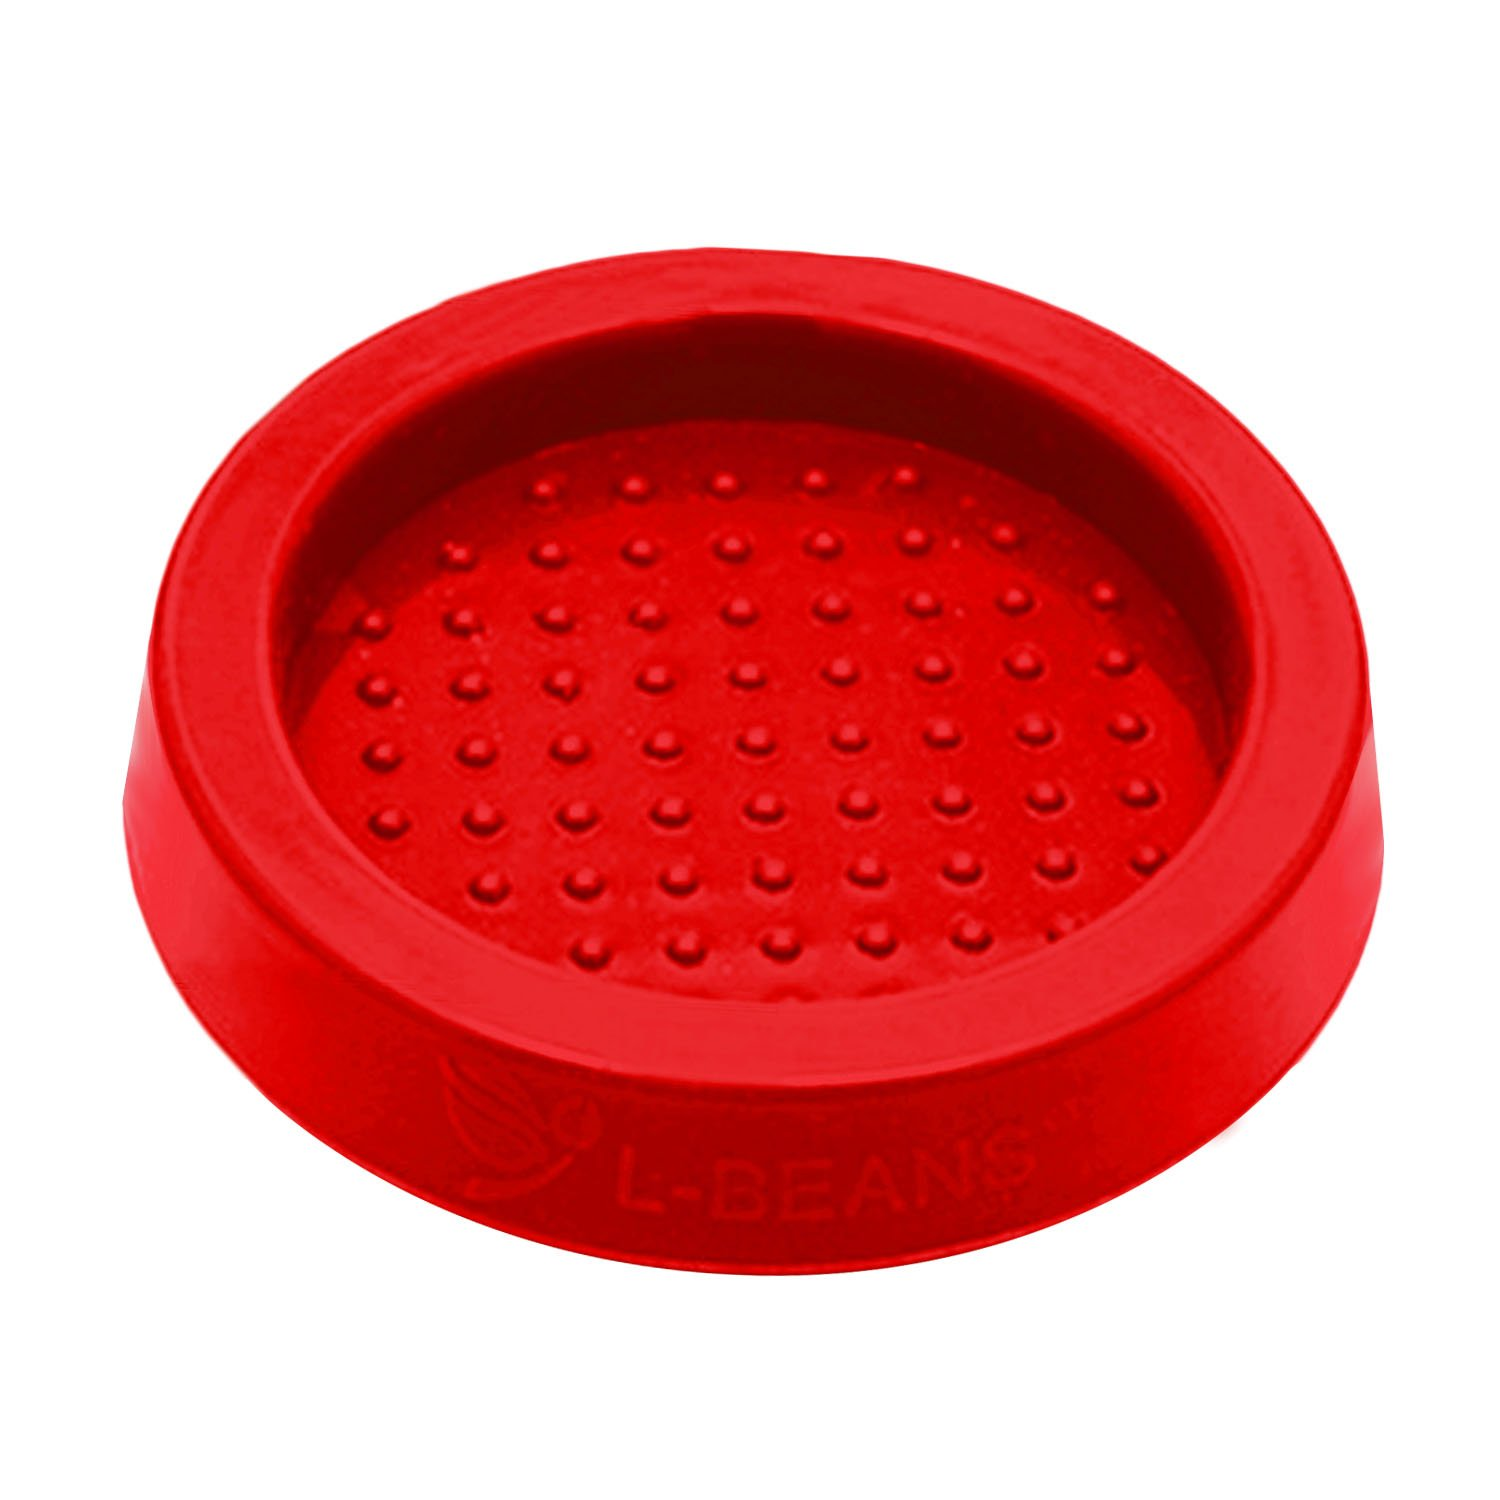 Silicone Espresso Coffee Tamper Stand Seat Mat Barista Tools for Tamping with the Portafilter Red